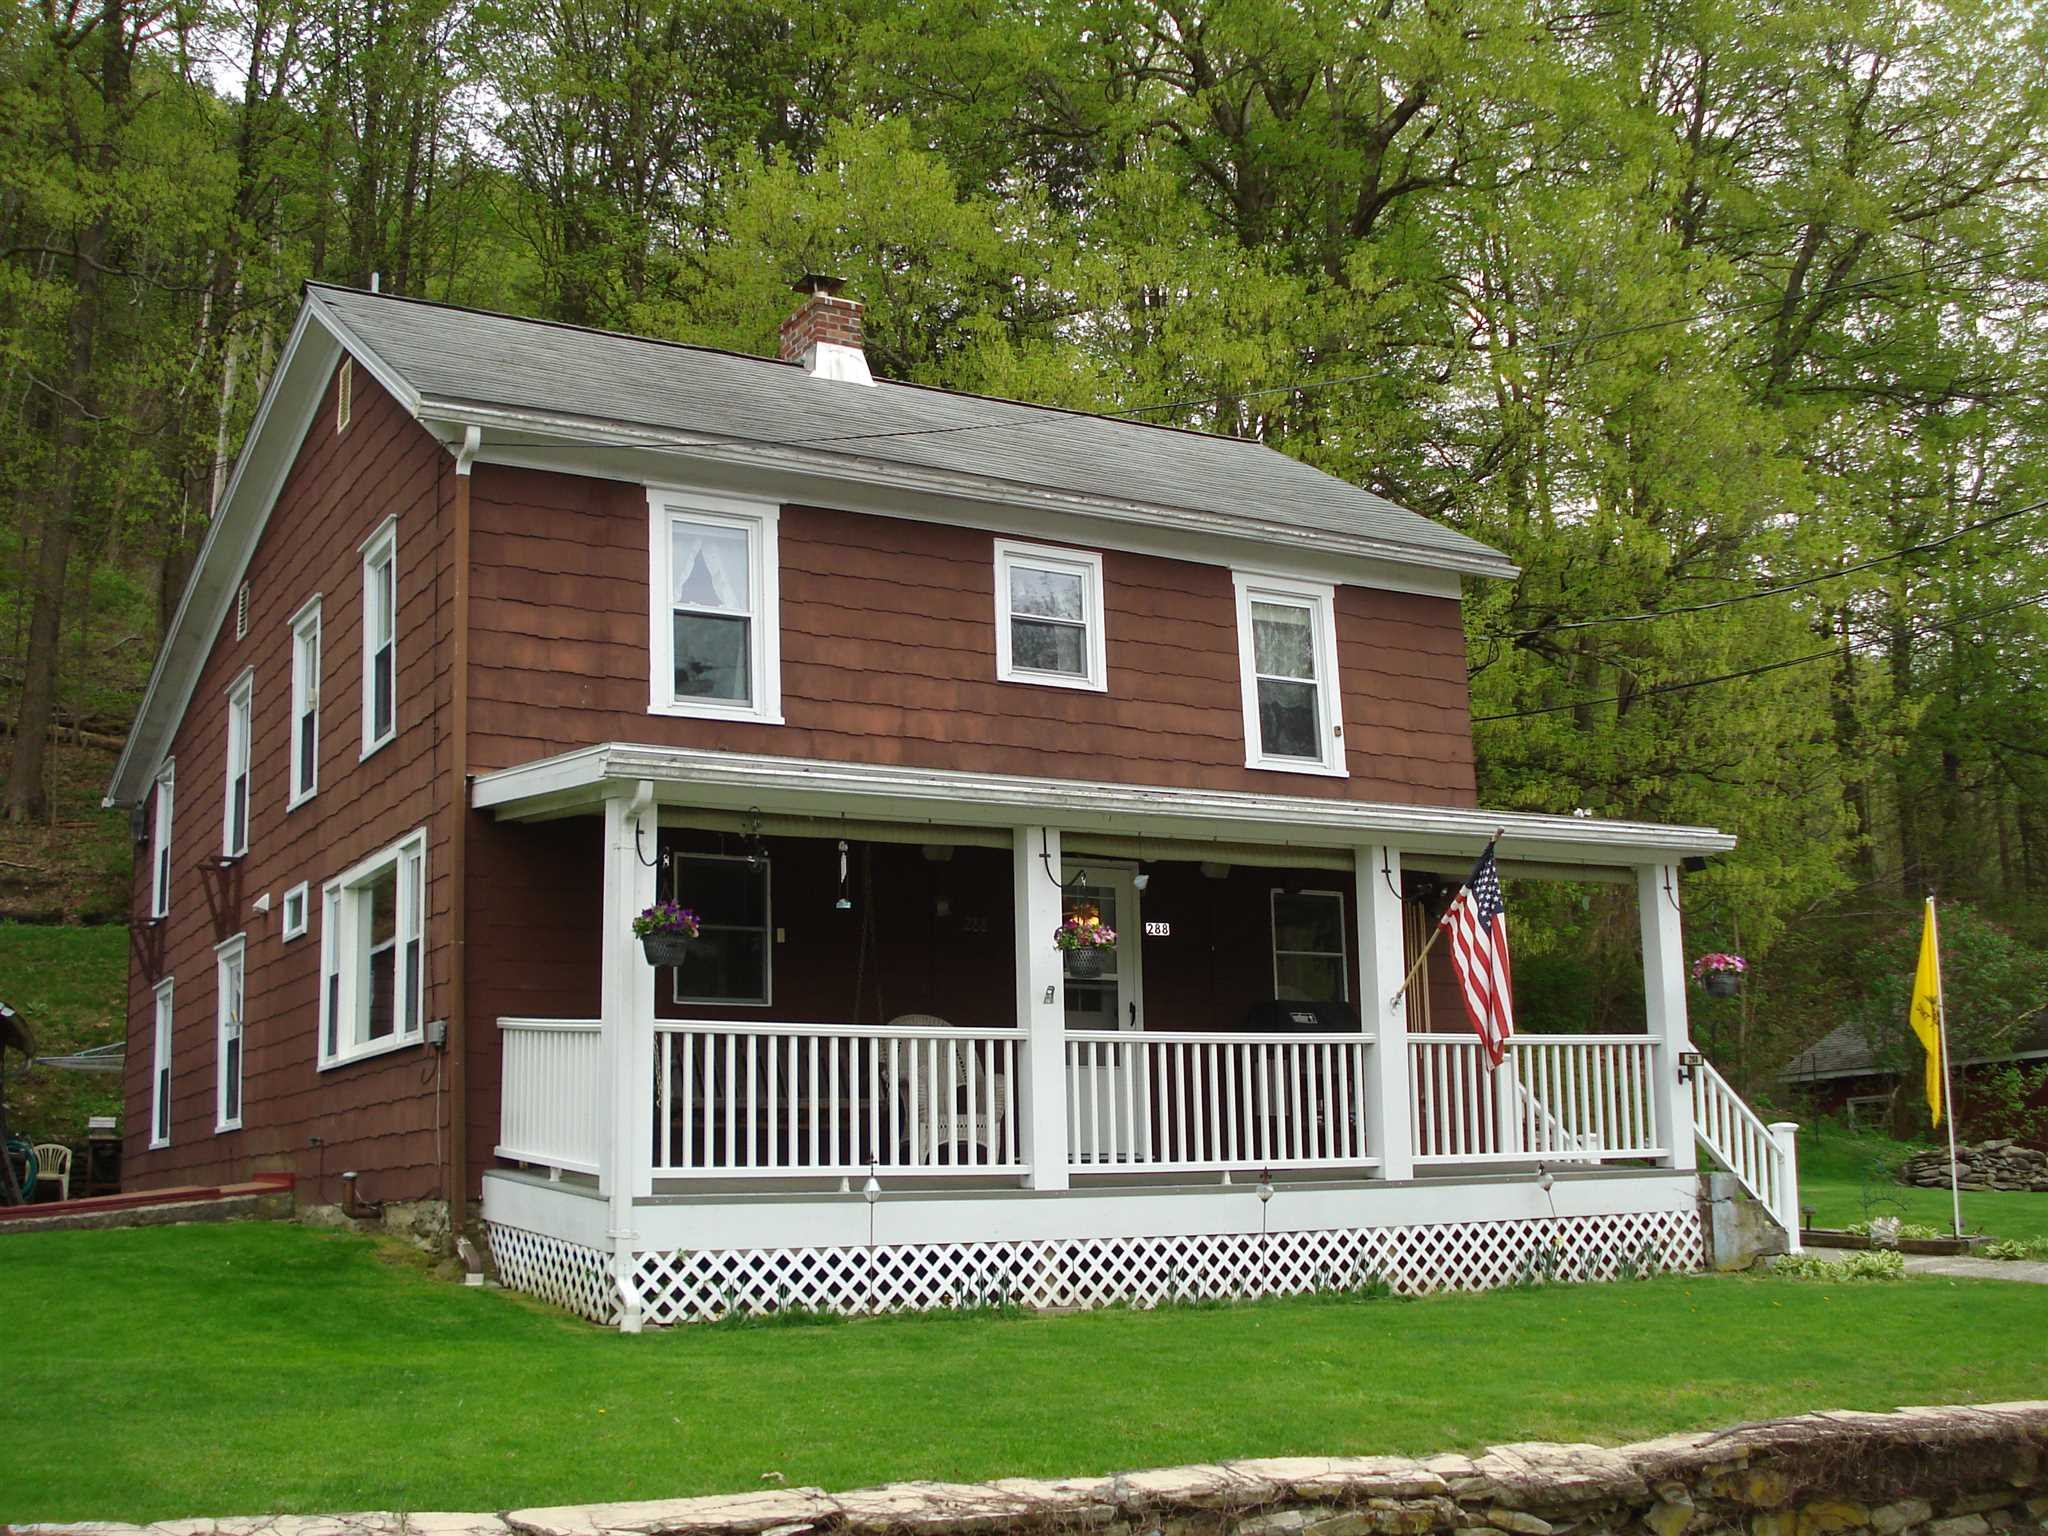 288 OLD ROUTE 22, Amenia, NY 12592